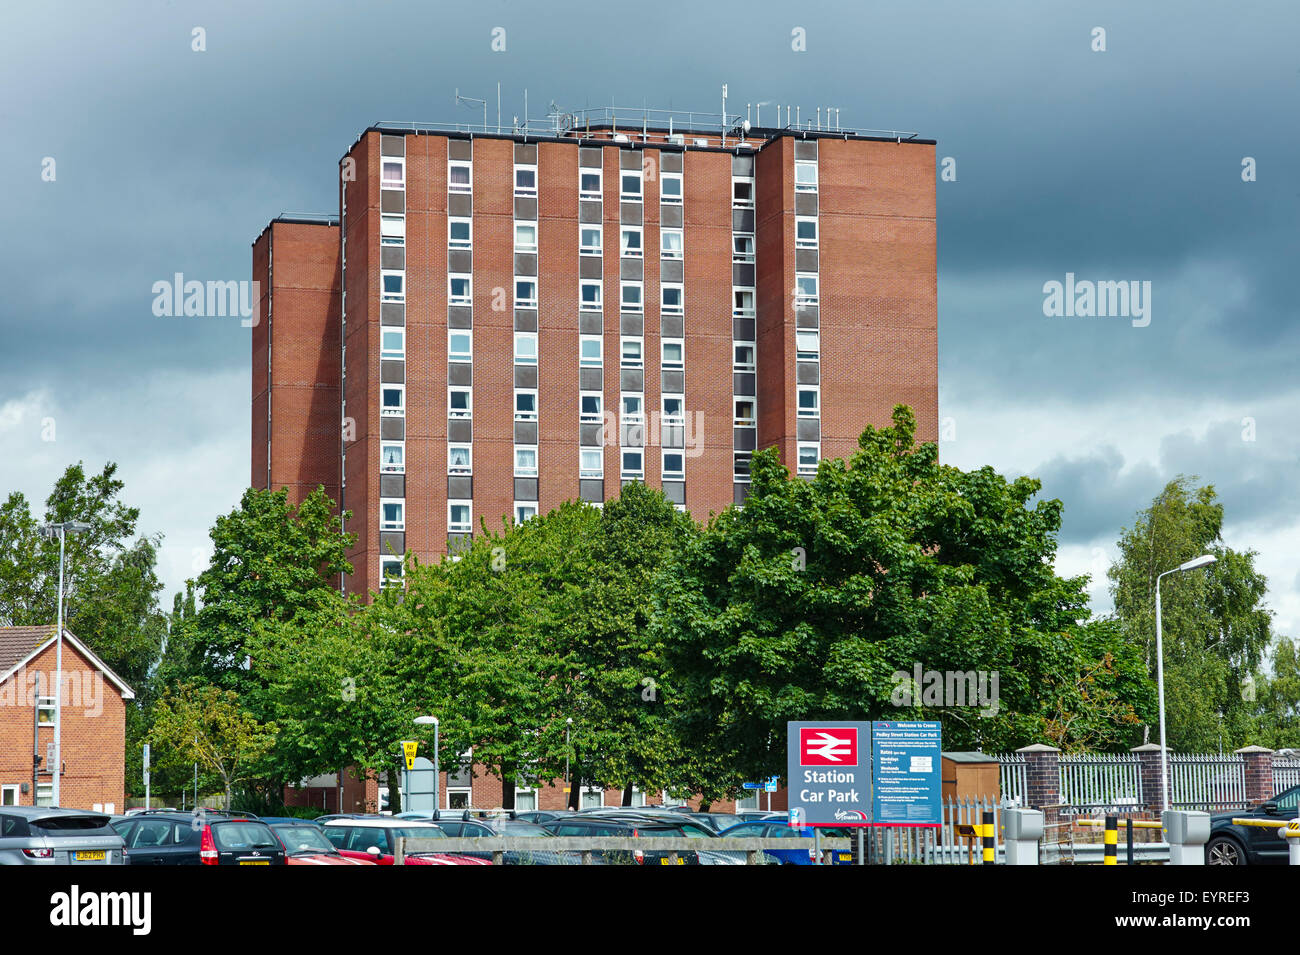 60s block of flats in Crewe near the station - Stock Image